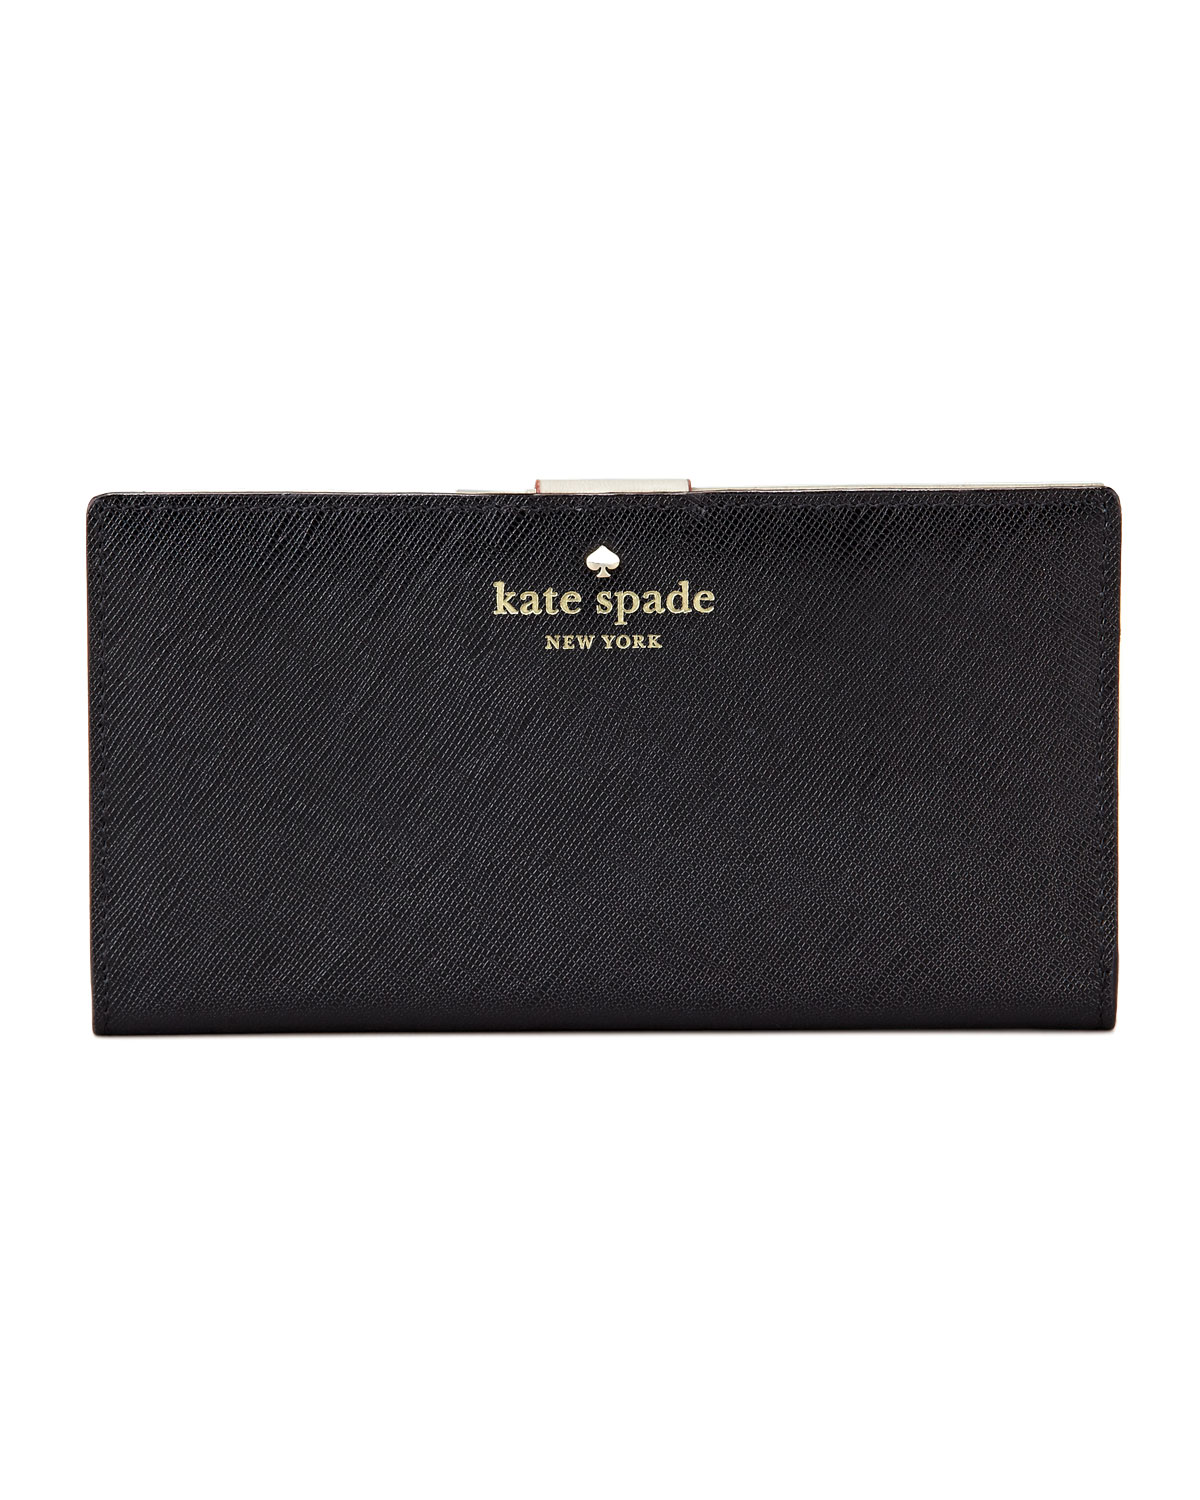 mikas pond stacy continental wallet, black   kate spade new york